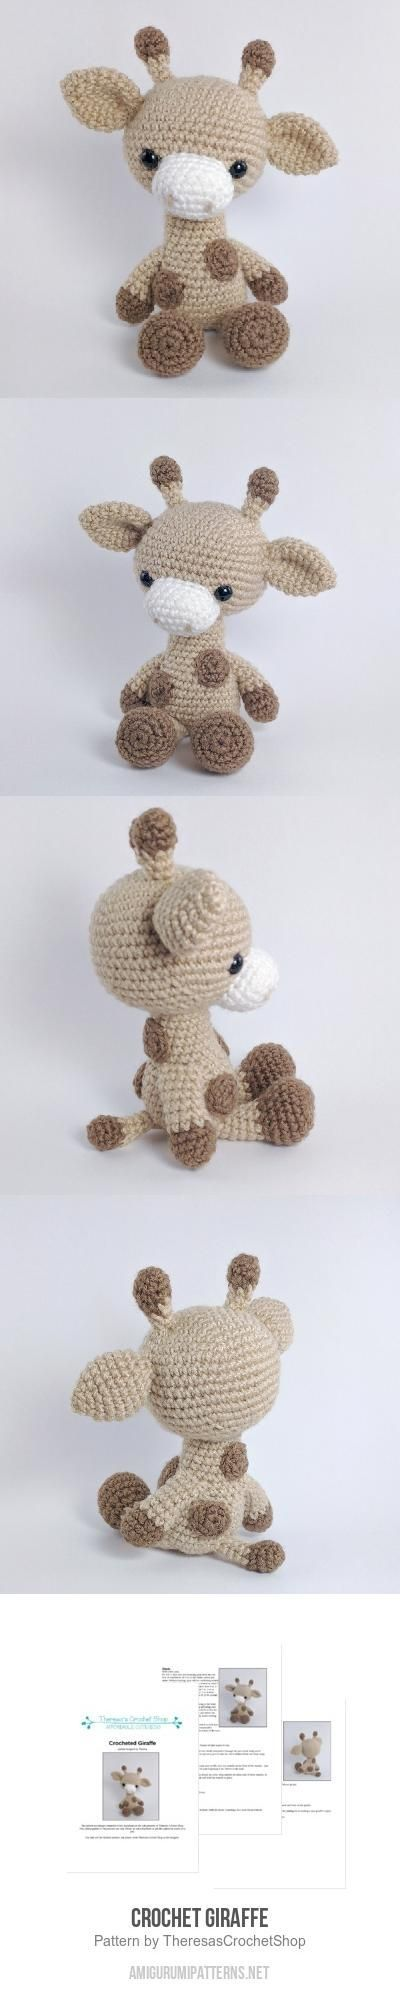 Crochet Giraffe Amigurumi Pattern by dominique